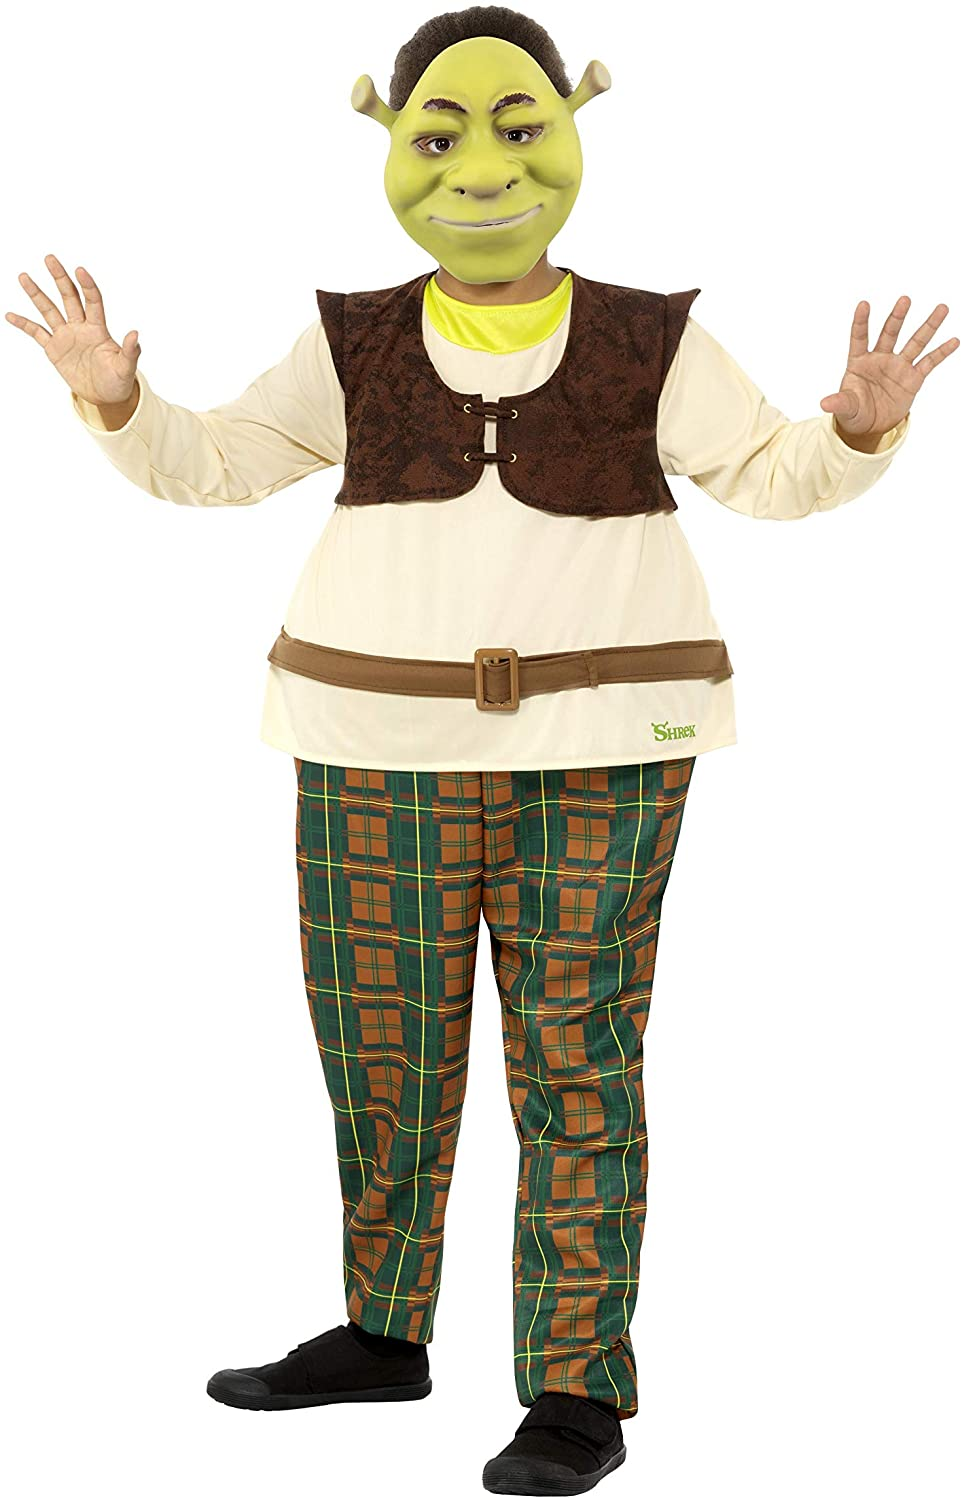 Childs Shrek Fancy Dress Costume Official Licensed Childrens Outfit by Smiffys